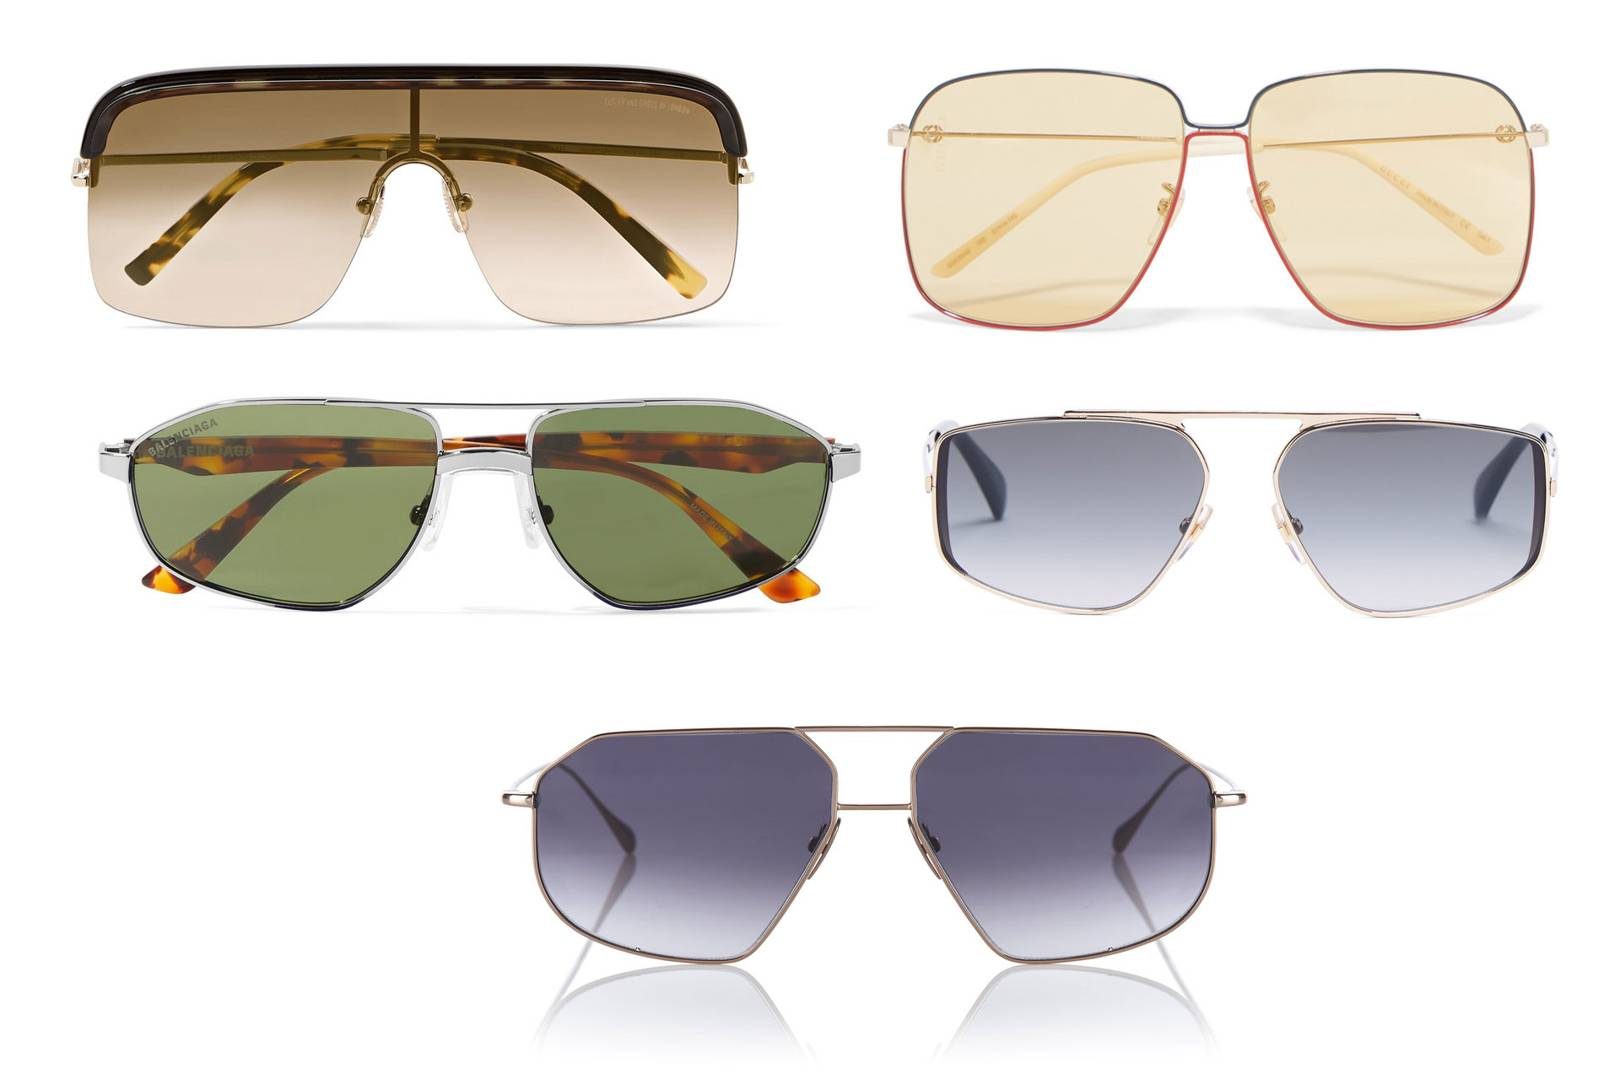 8a9f82ceb7b The Best Sunglasses To Equip You For The Months Ahead